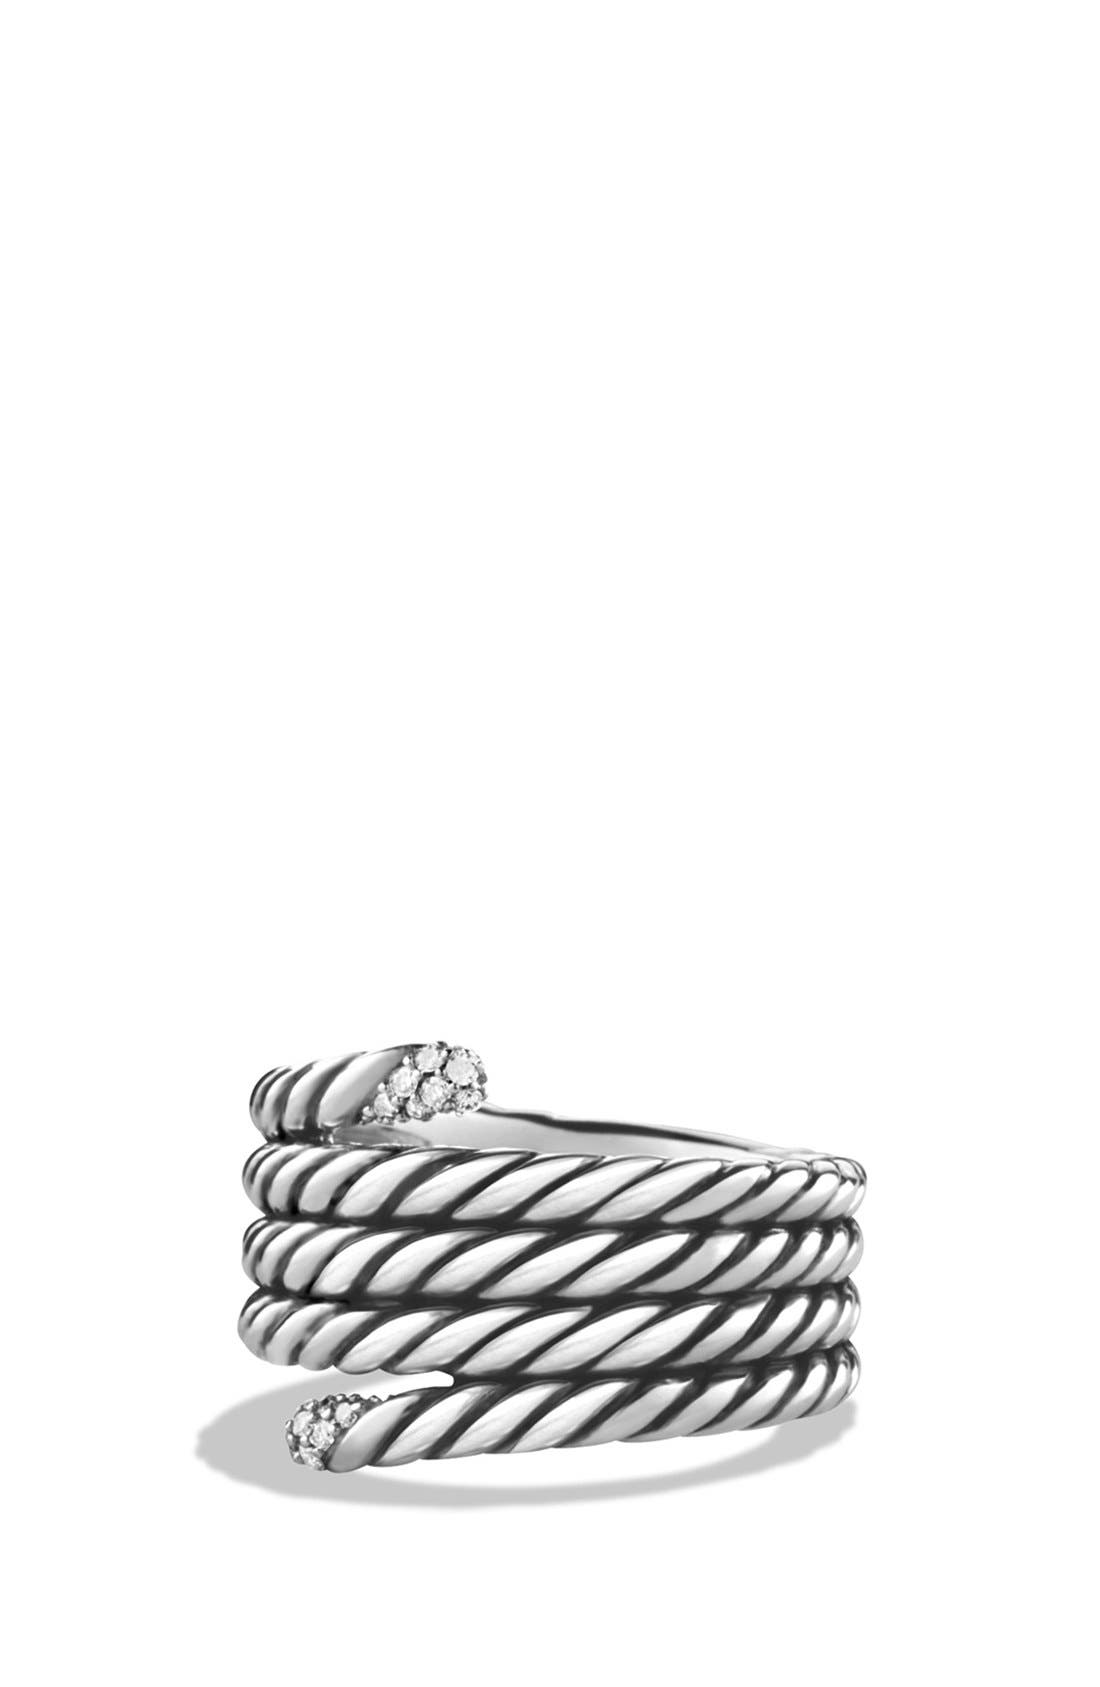 Main Image - David Yurman 'Willow' Serpentine Ring with Diamonds